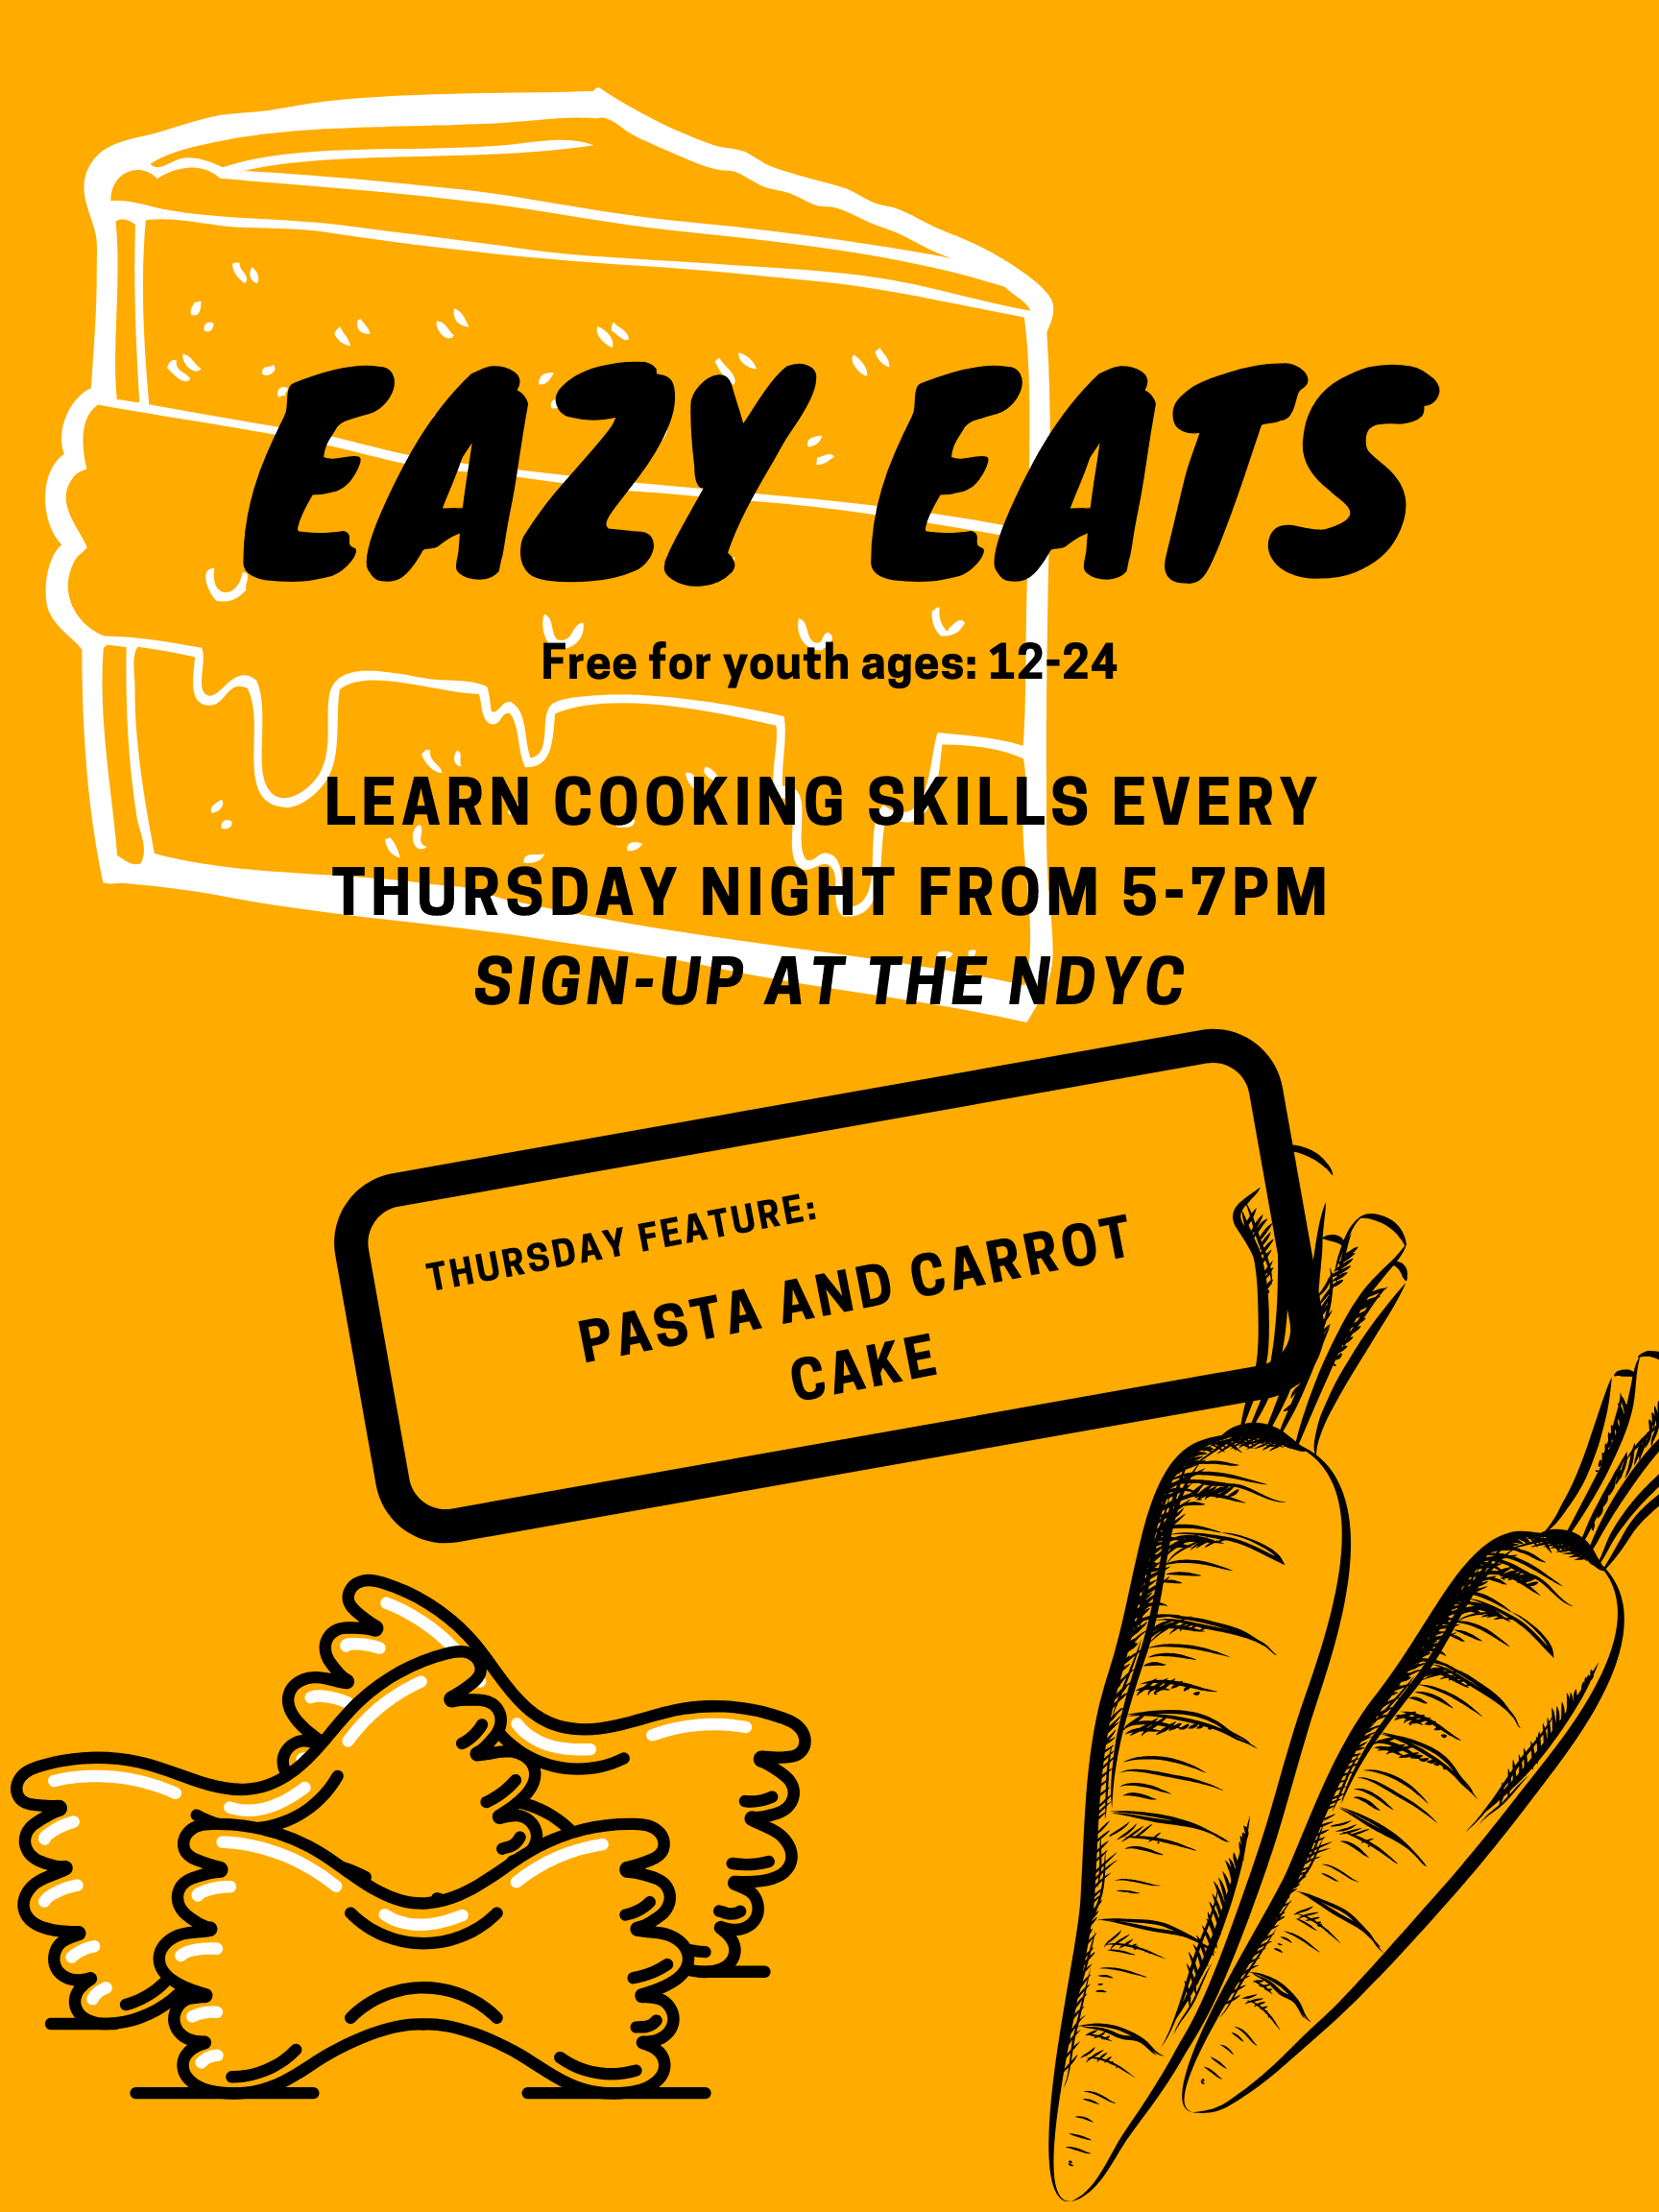 Eazy eats oct 24